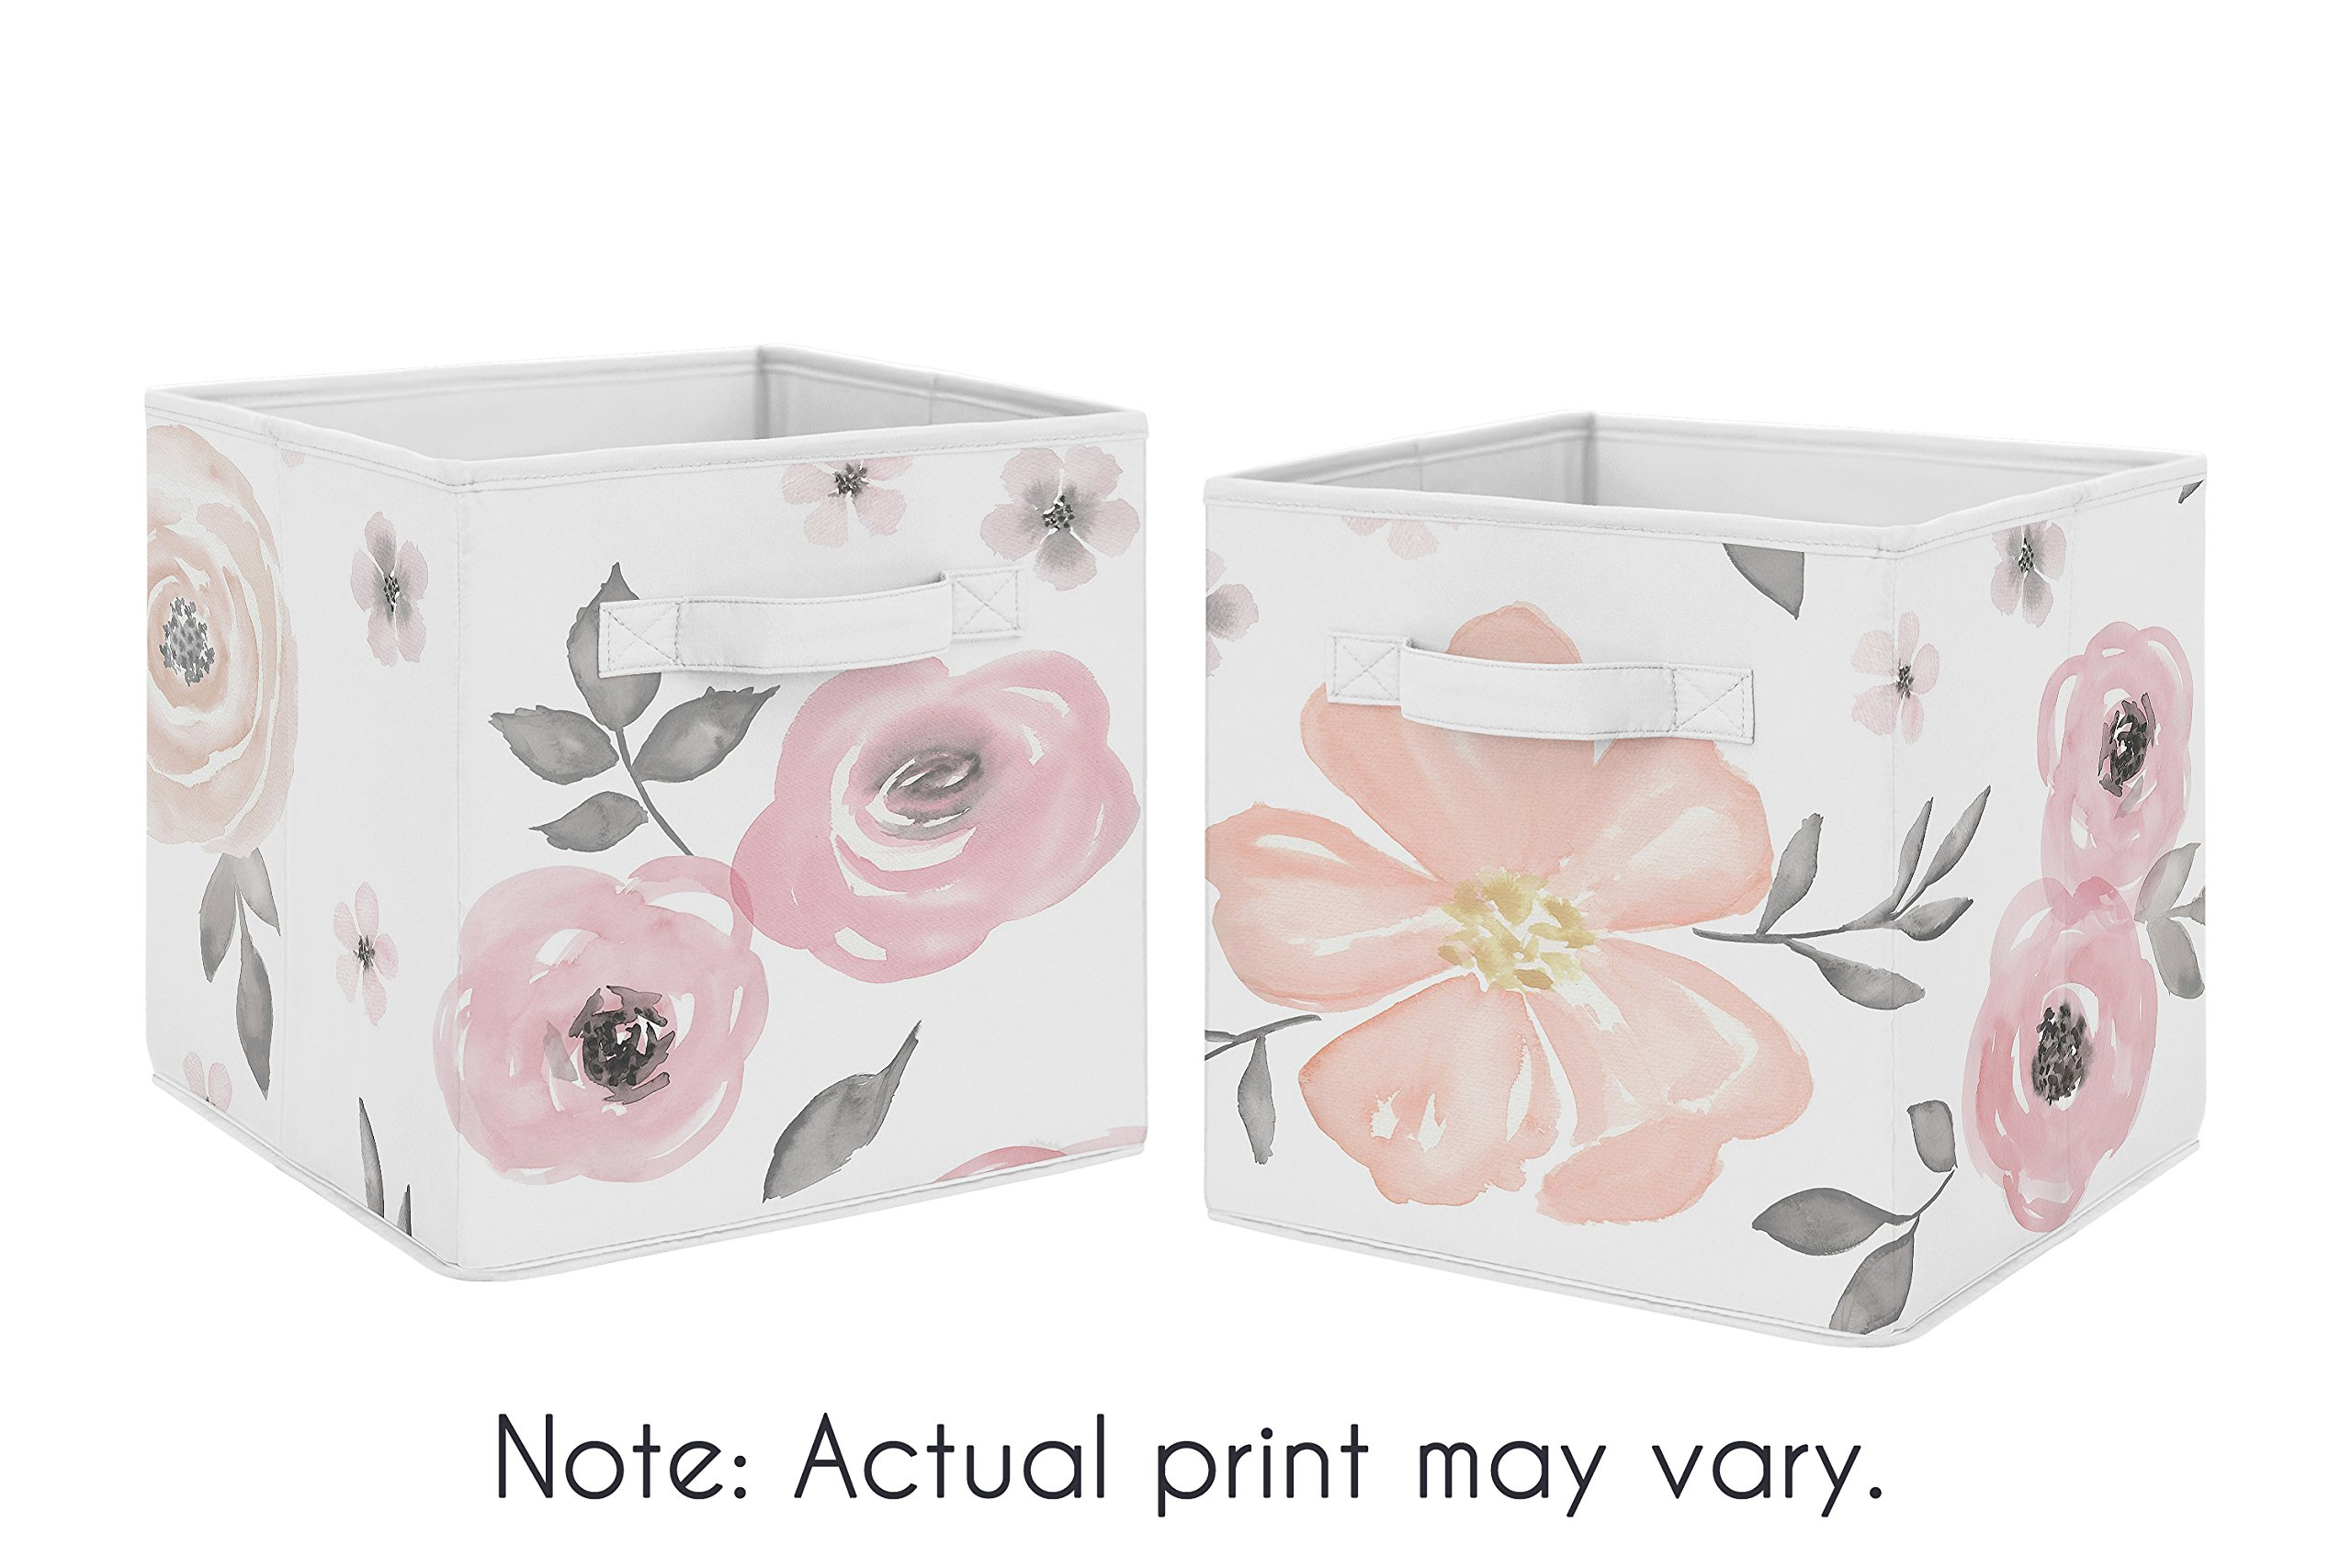 Pink and Grey Watercolor Floral Foldable Fabric Storage Cube Bins Boxes Organizer Toys Kids Baby Childrens for Collection by Sweet Jojo Designs - Set of 2 by Sweet Jojo Designs